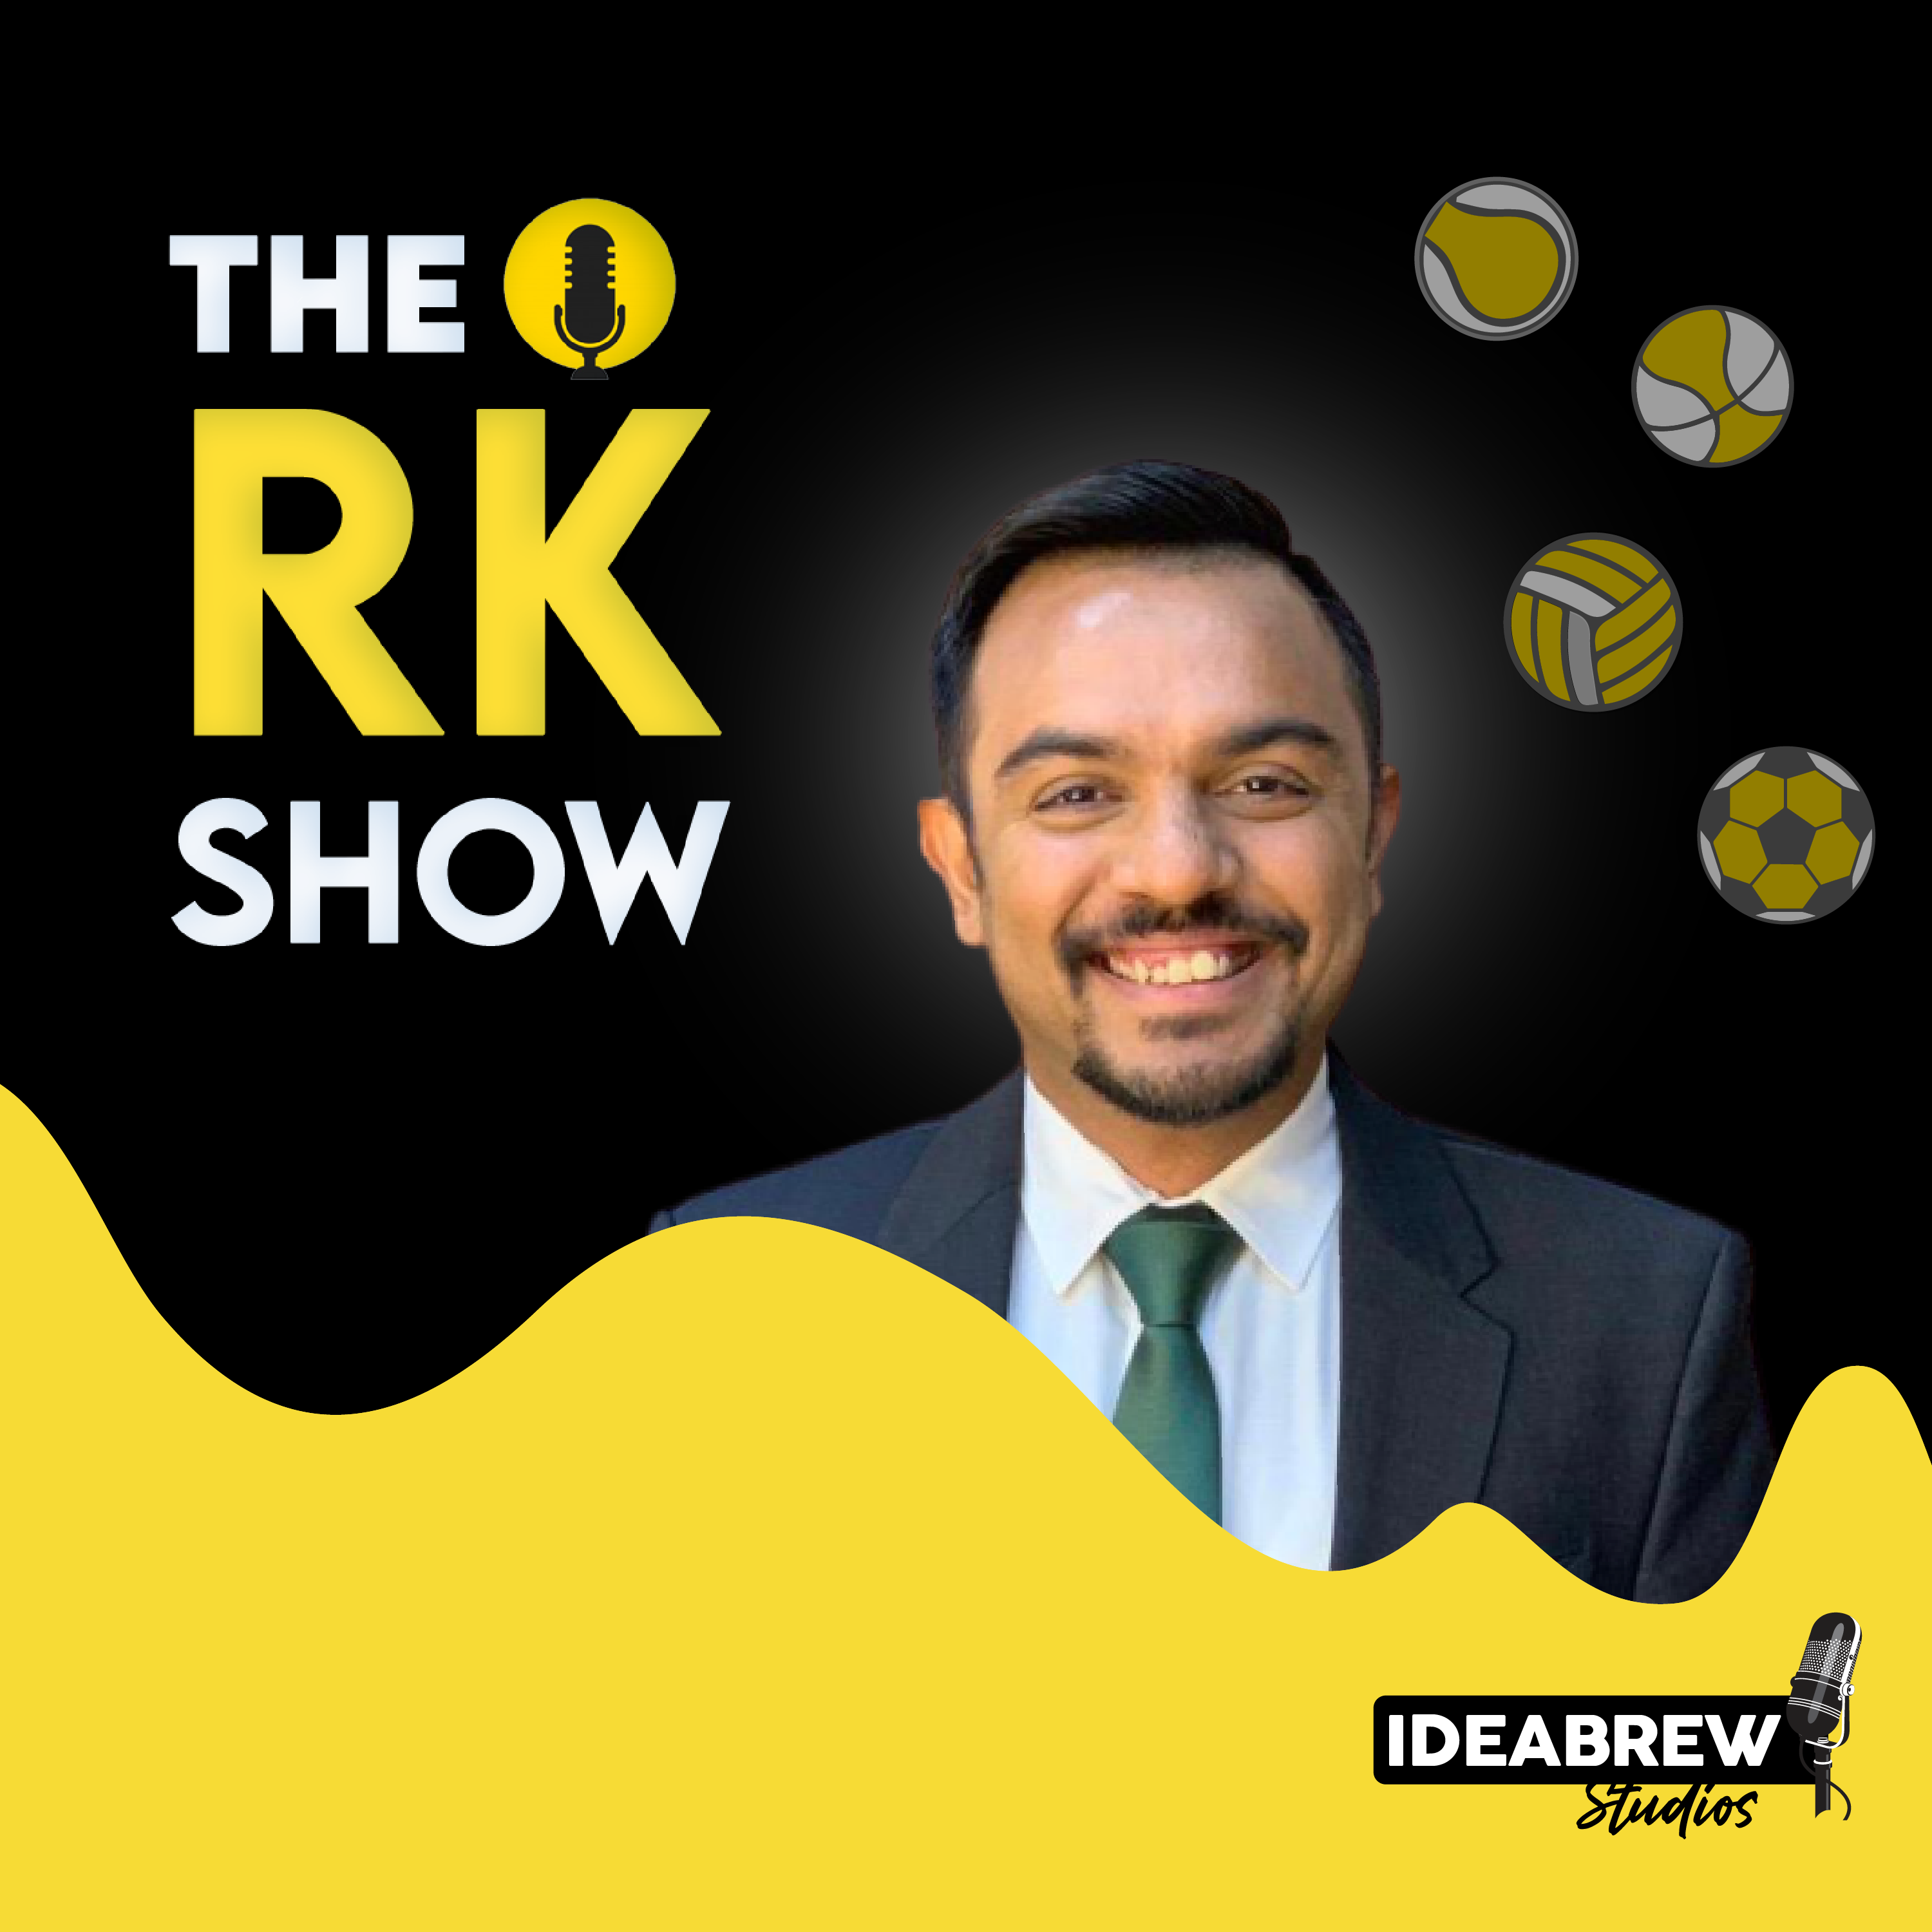 The RK Show Trailer